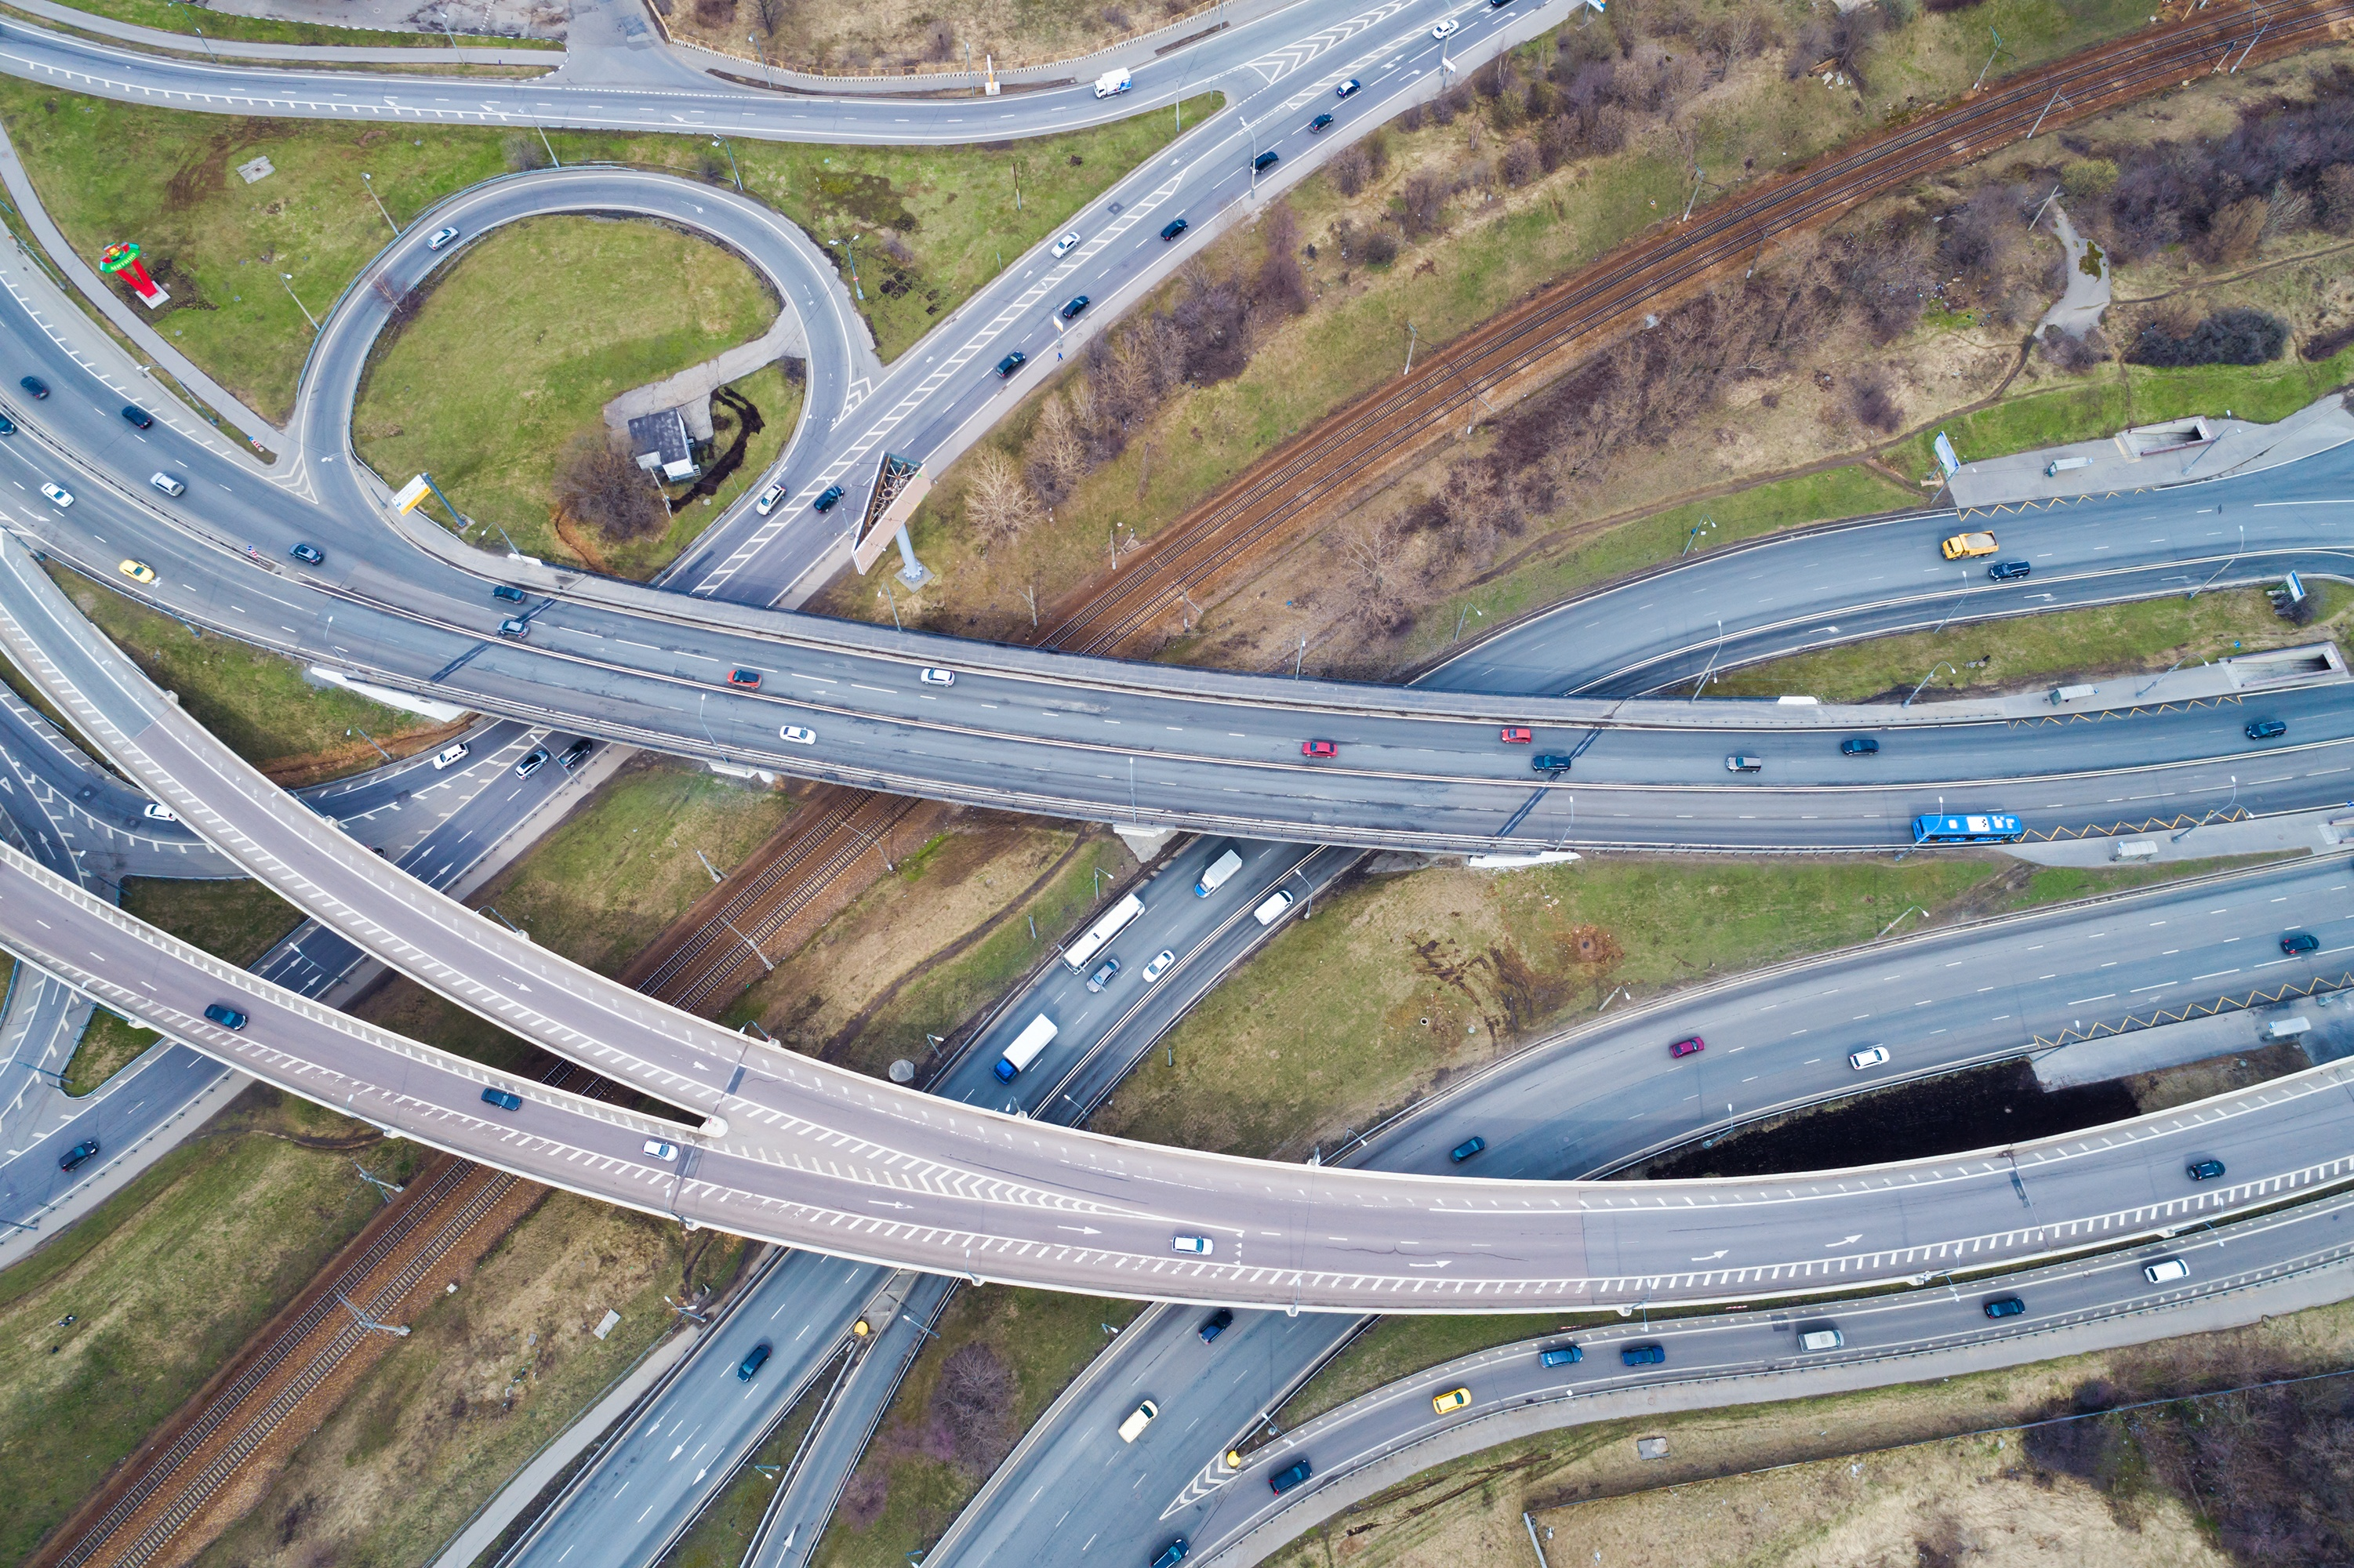 aerial-view-of-a-freeway-intersection-PRV6BWY